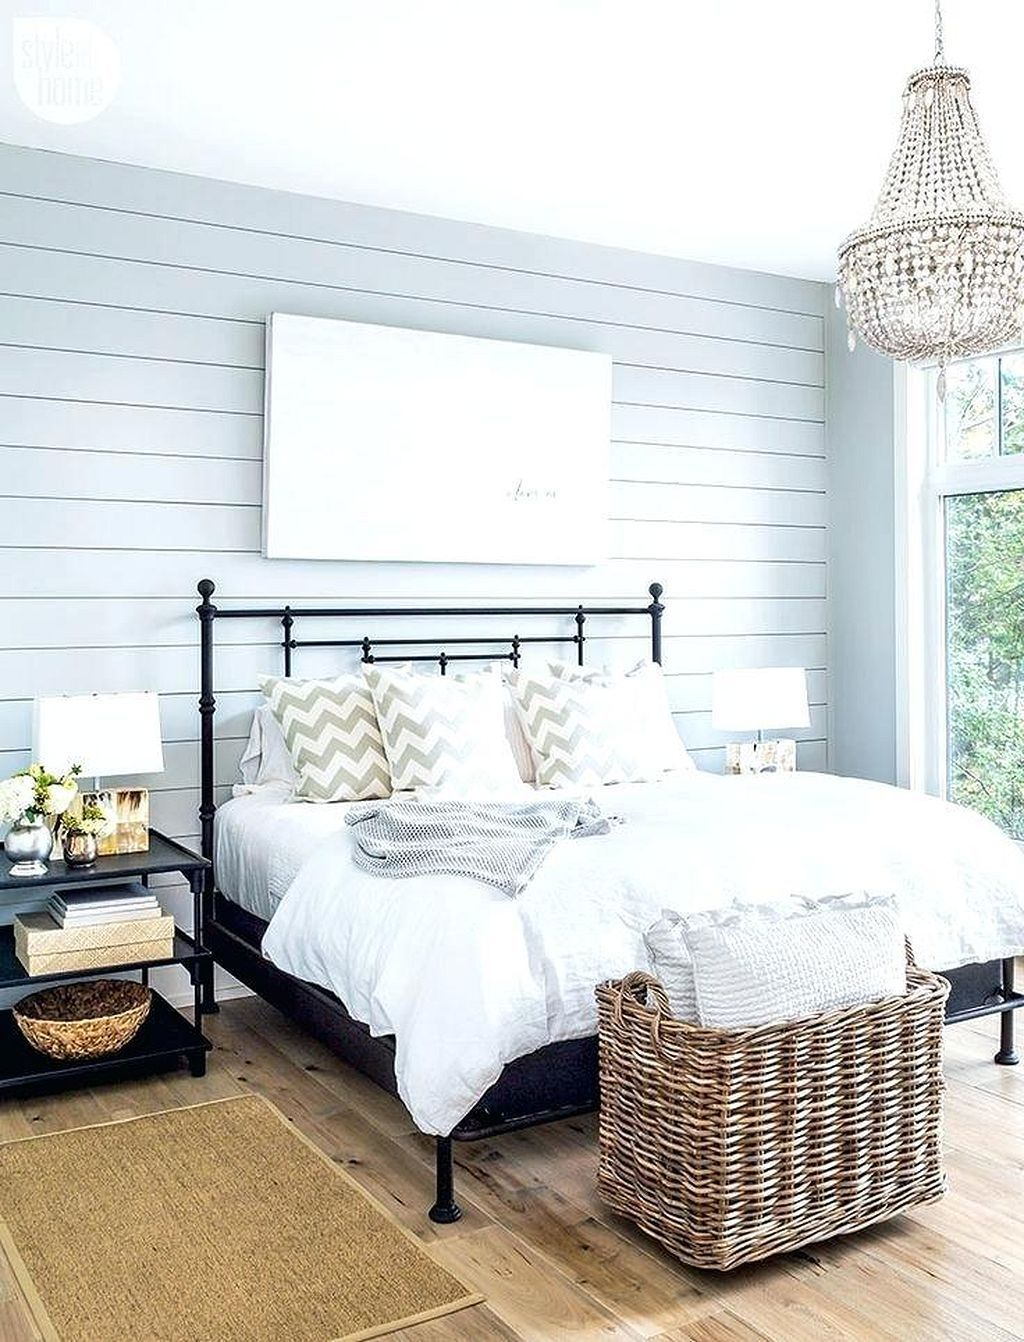 cool 10 incredible white and blue master bedroom interior design httpsdecoratioon blue master bedroom design d35 blue